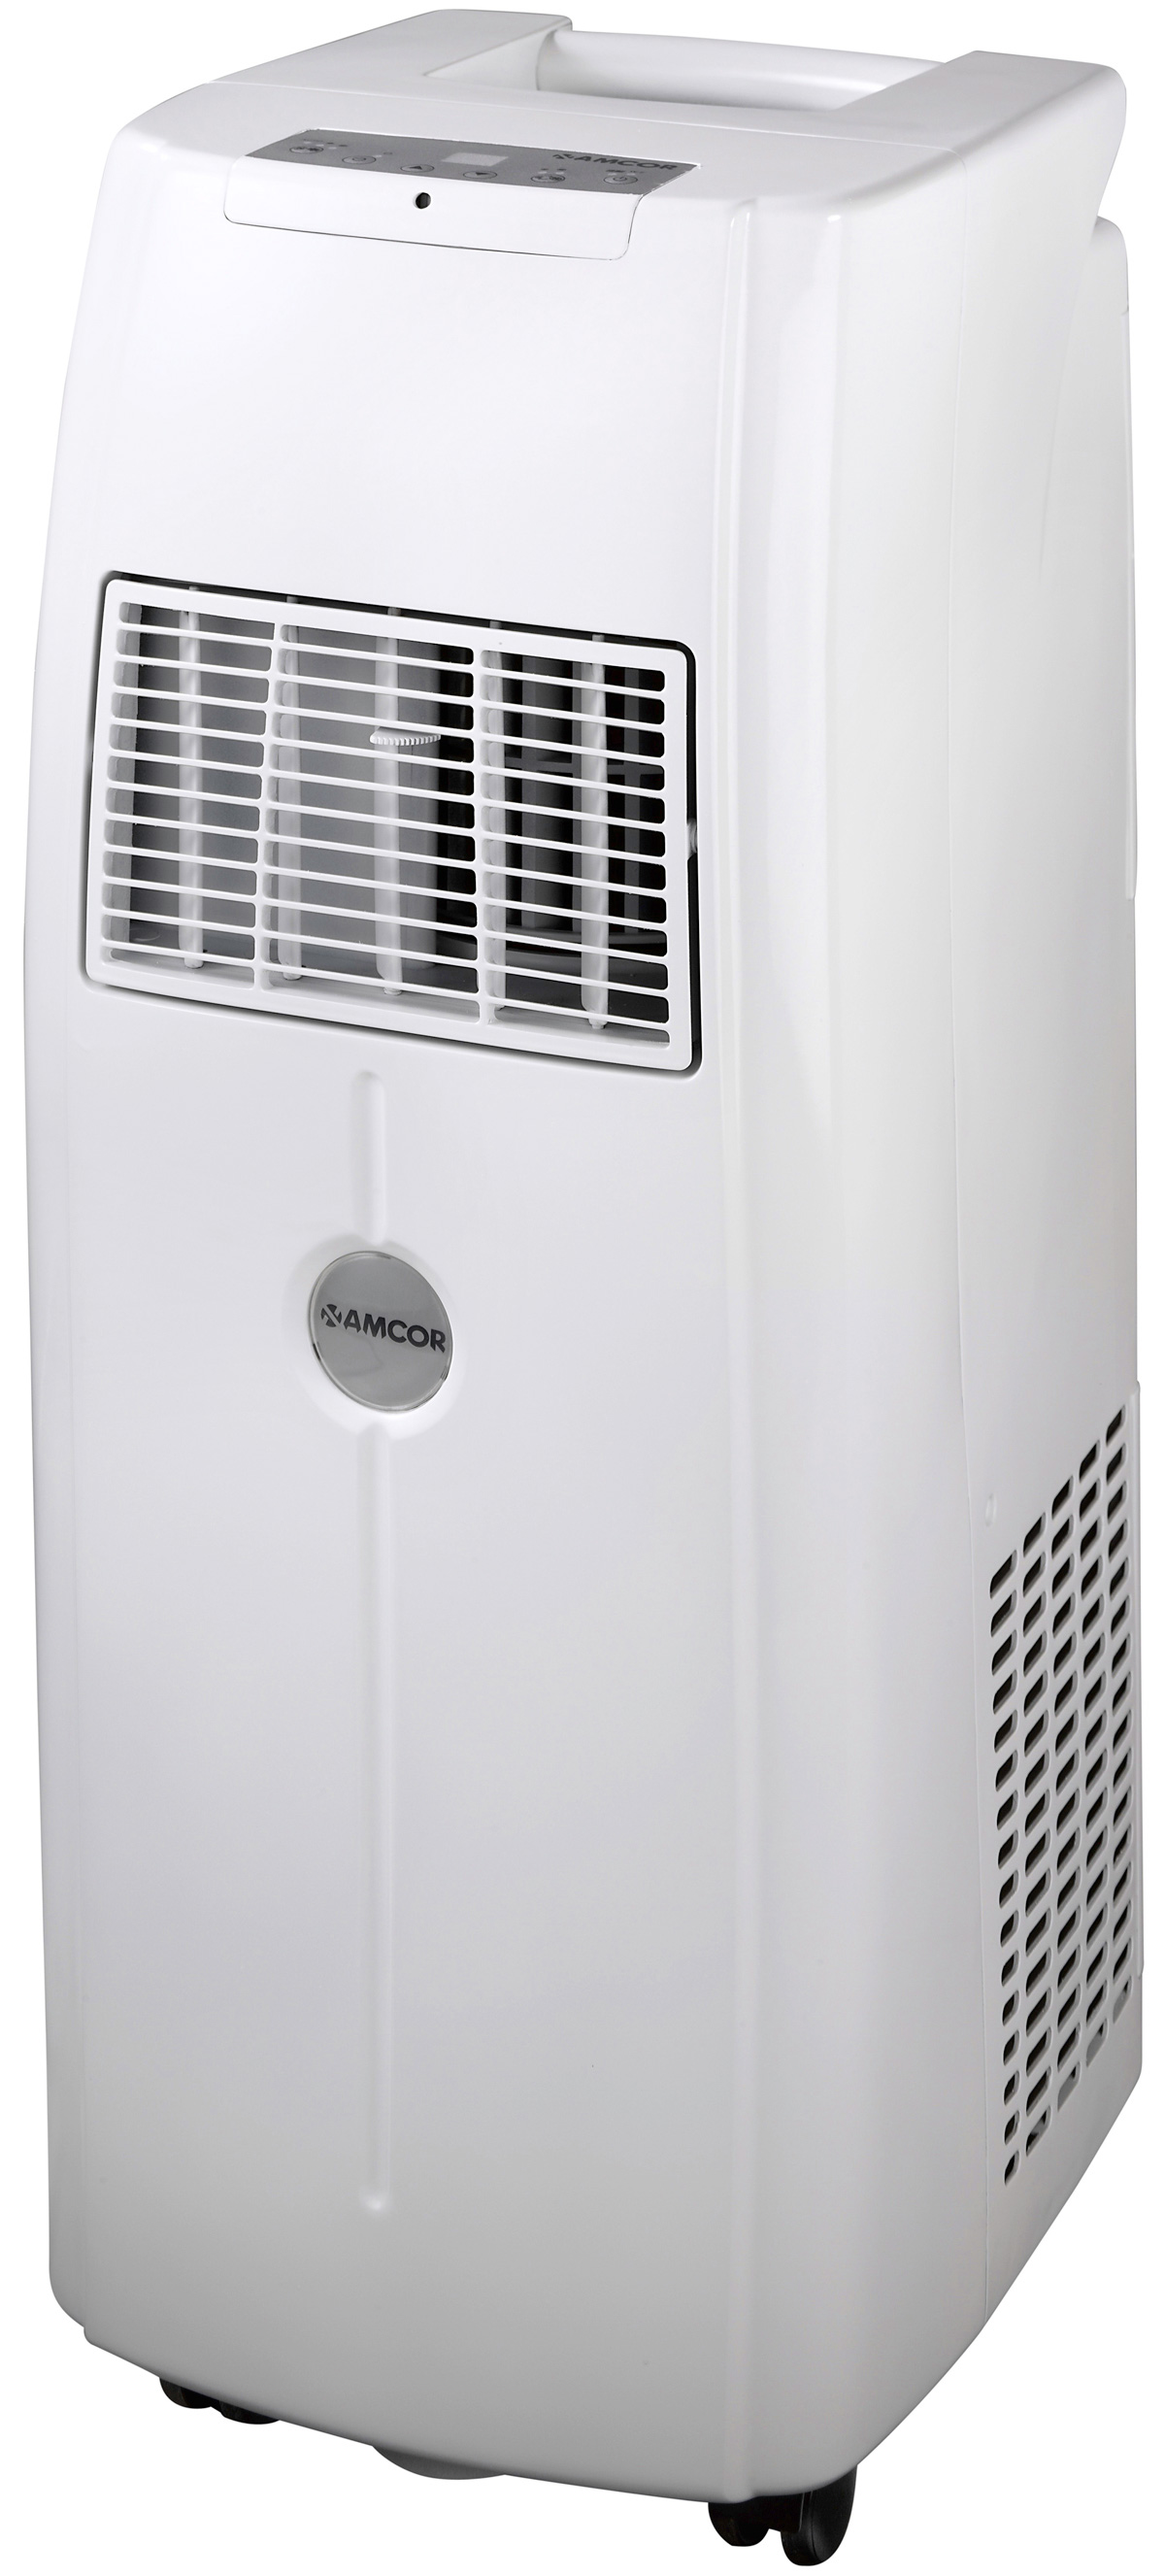 The Portable Airconditioners Offer Great Options